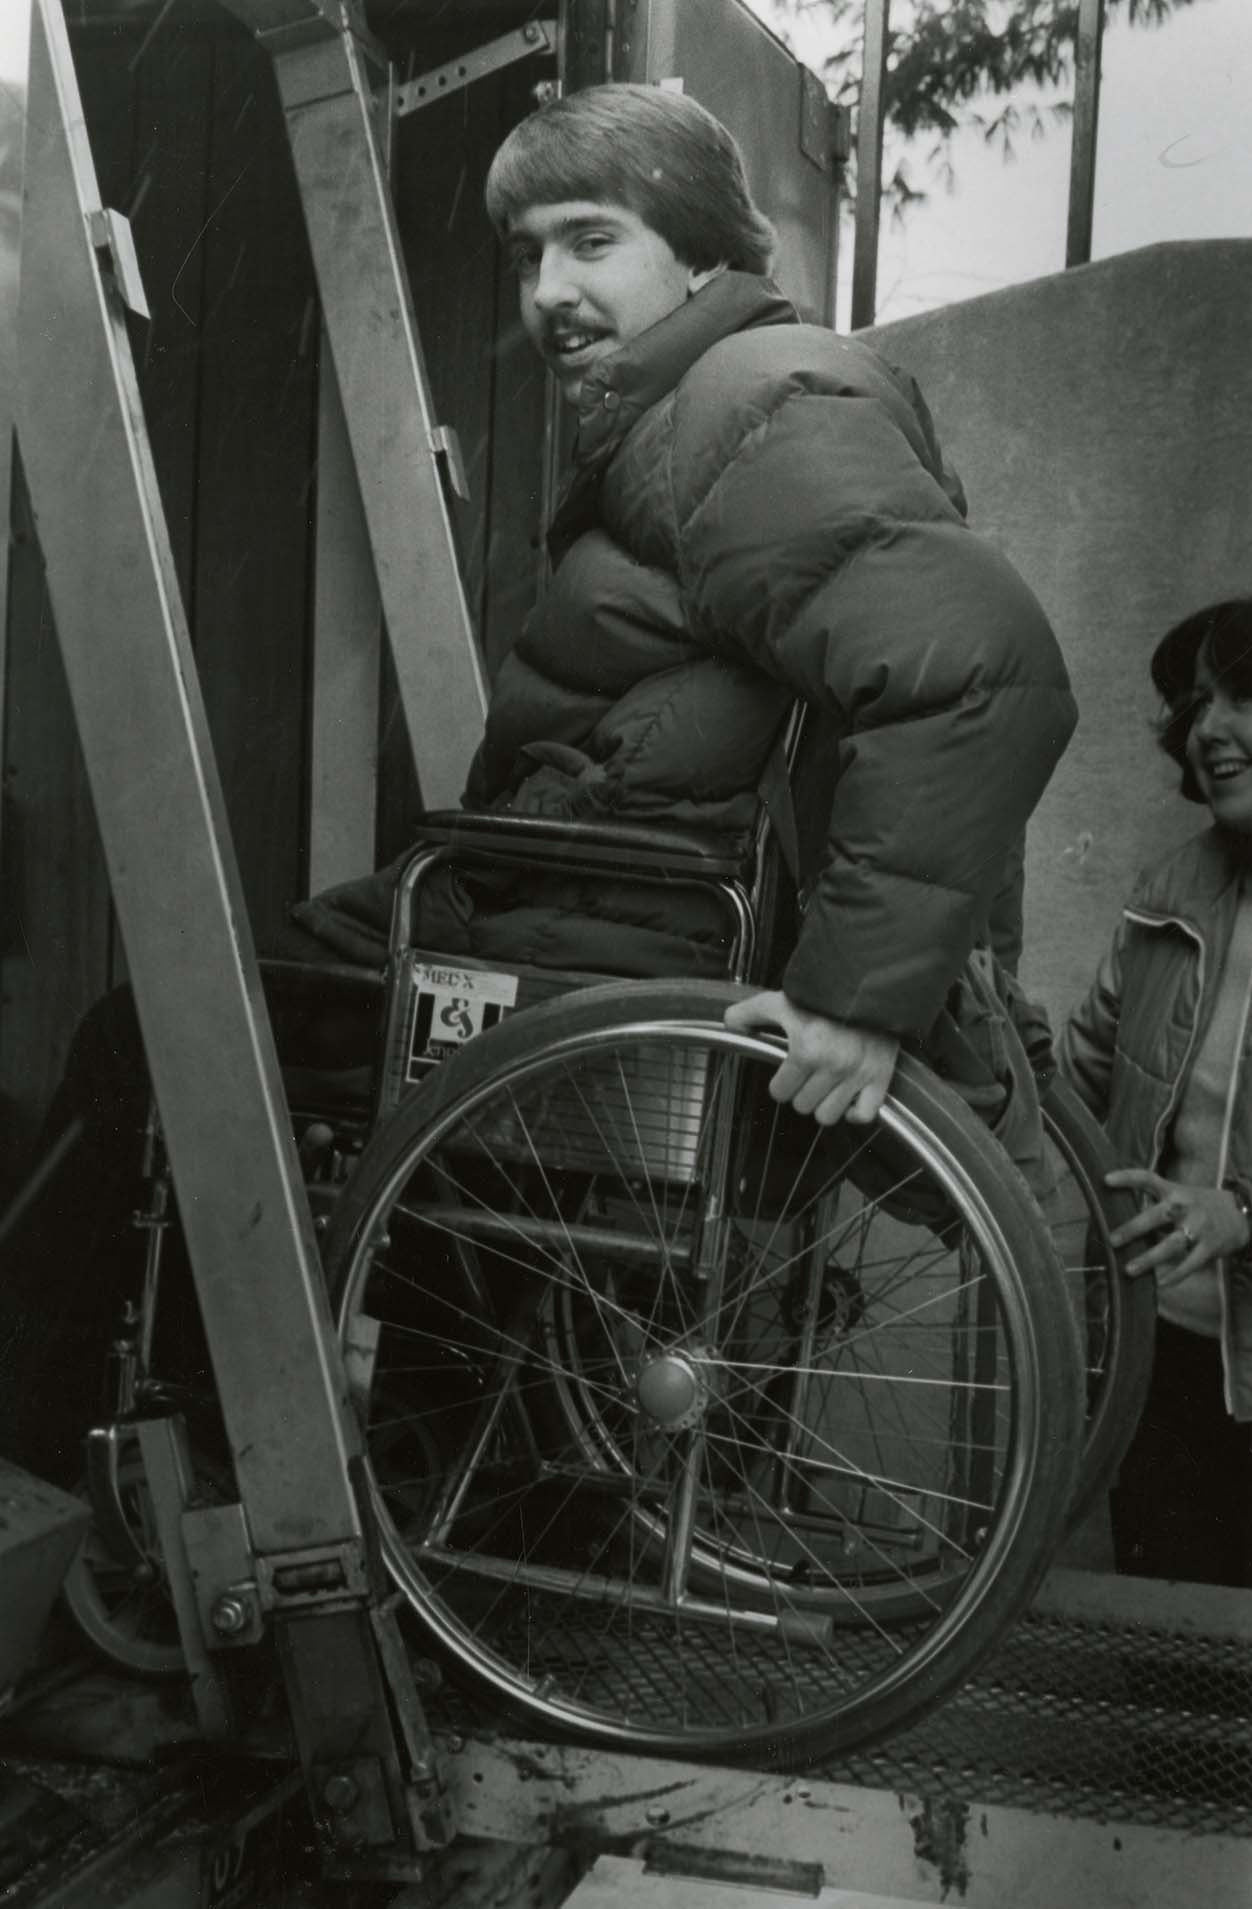 UConn student in a wheelchair loading into a transport van on the Storrs campus, 1981